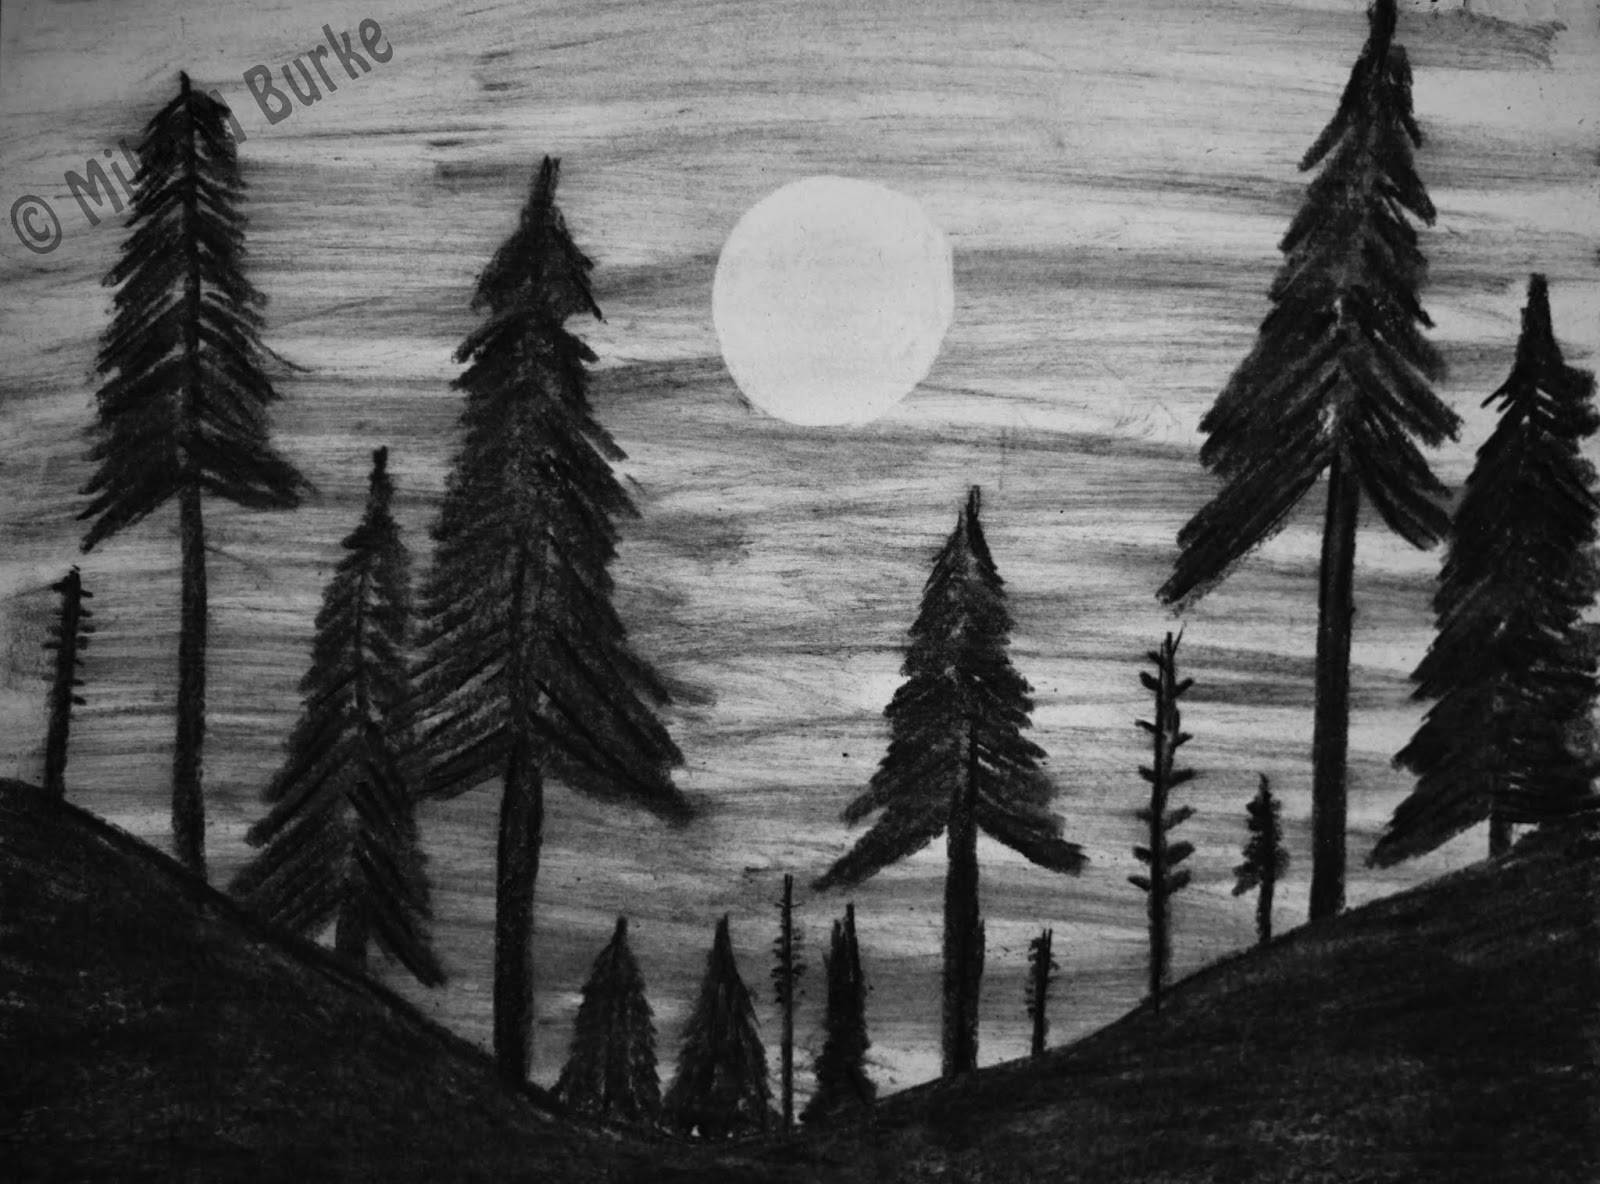 How To Draw and Shade A Simple Landscape For Beginners ... |Charcoal Drawings Of Landscapes